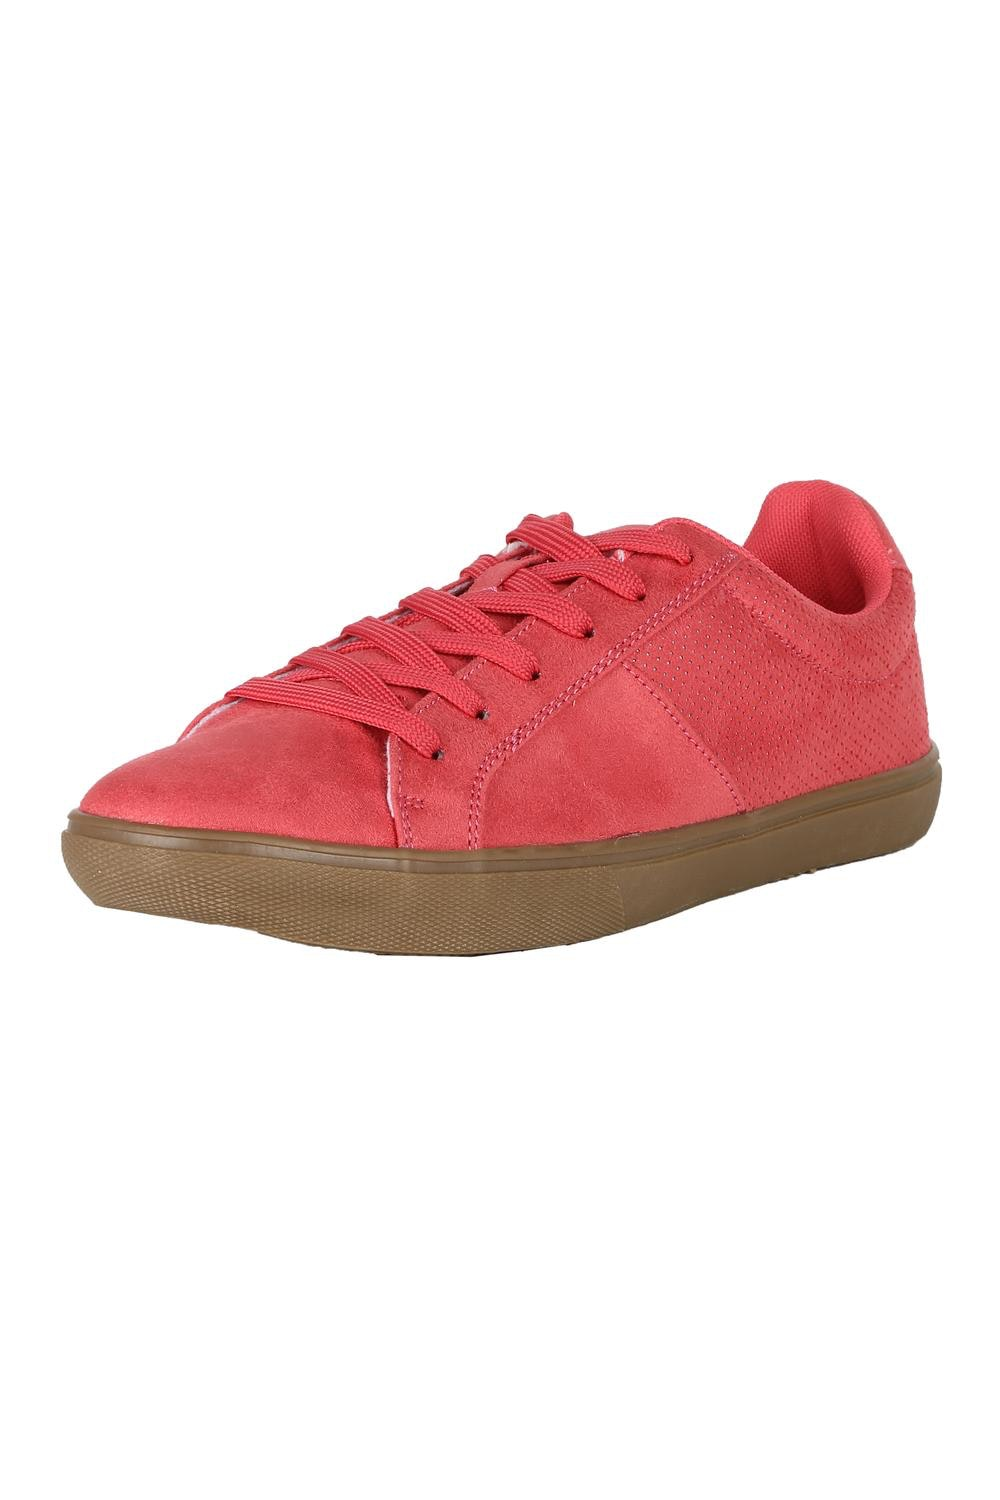 aab4b849e1a5 Buy Mens Shoes-Buy Allen Solly Casual Shoes